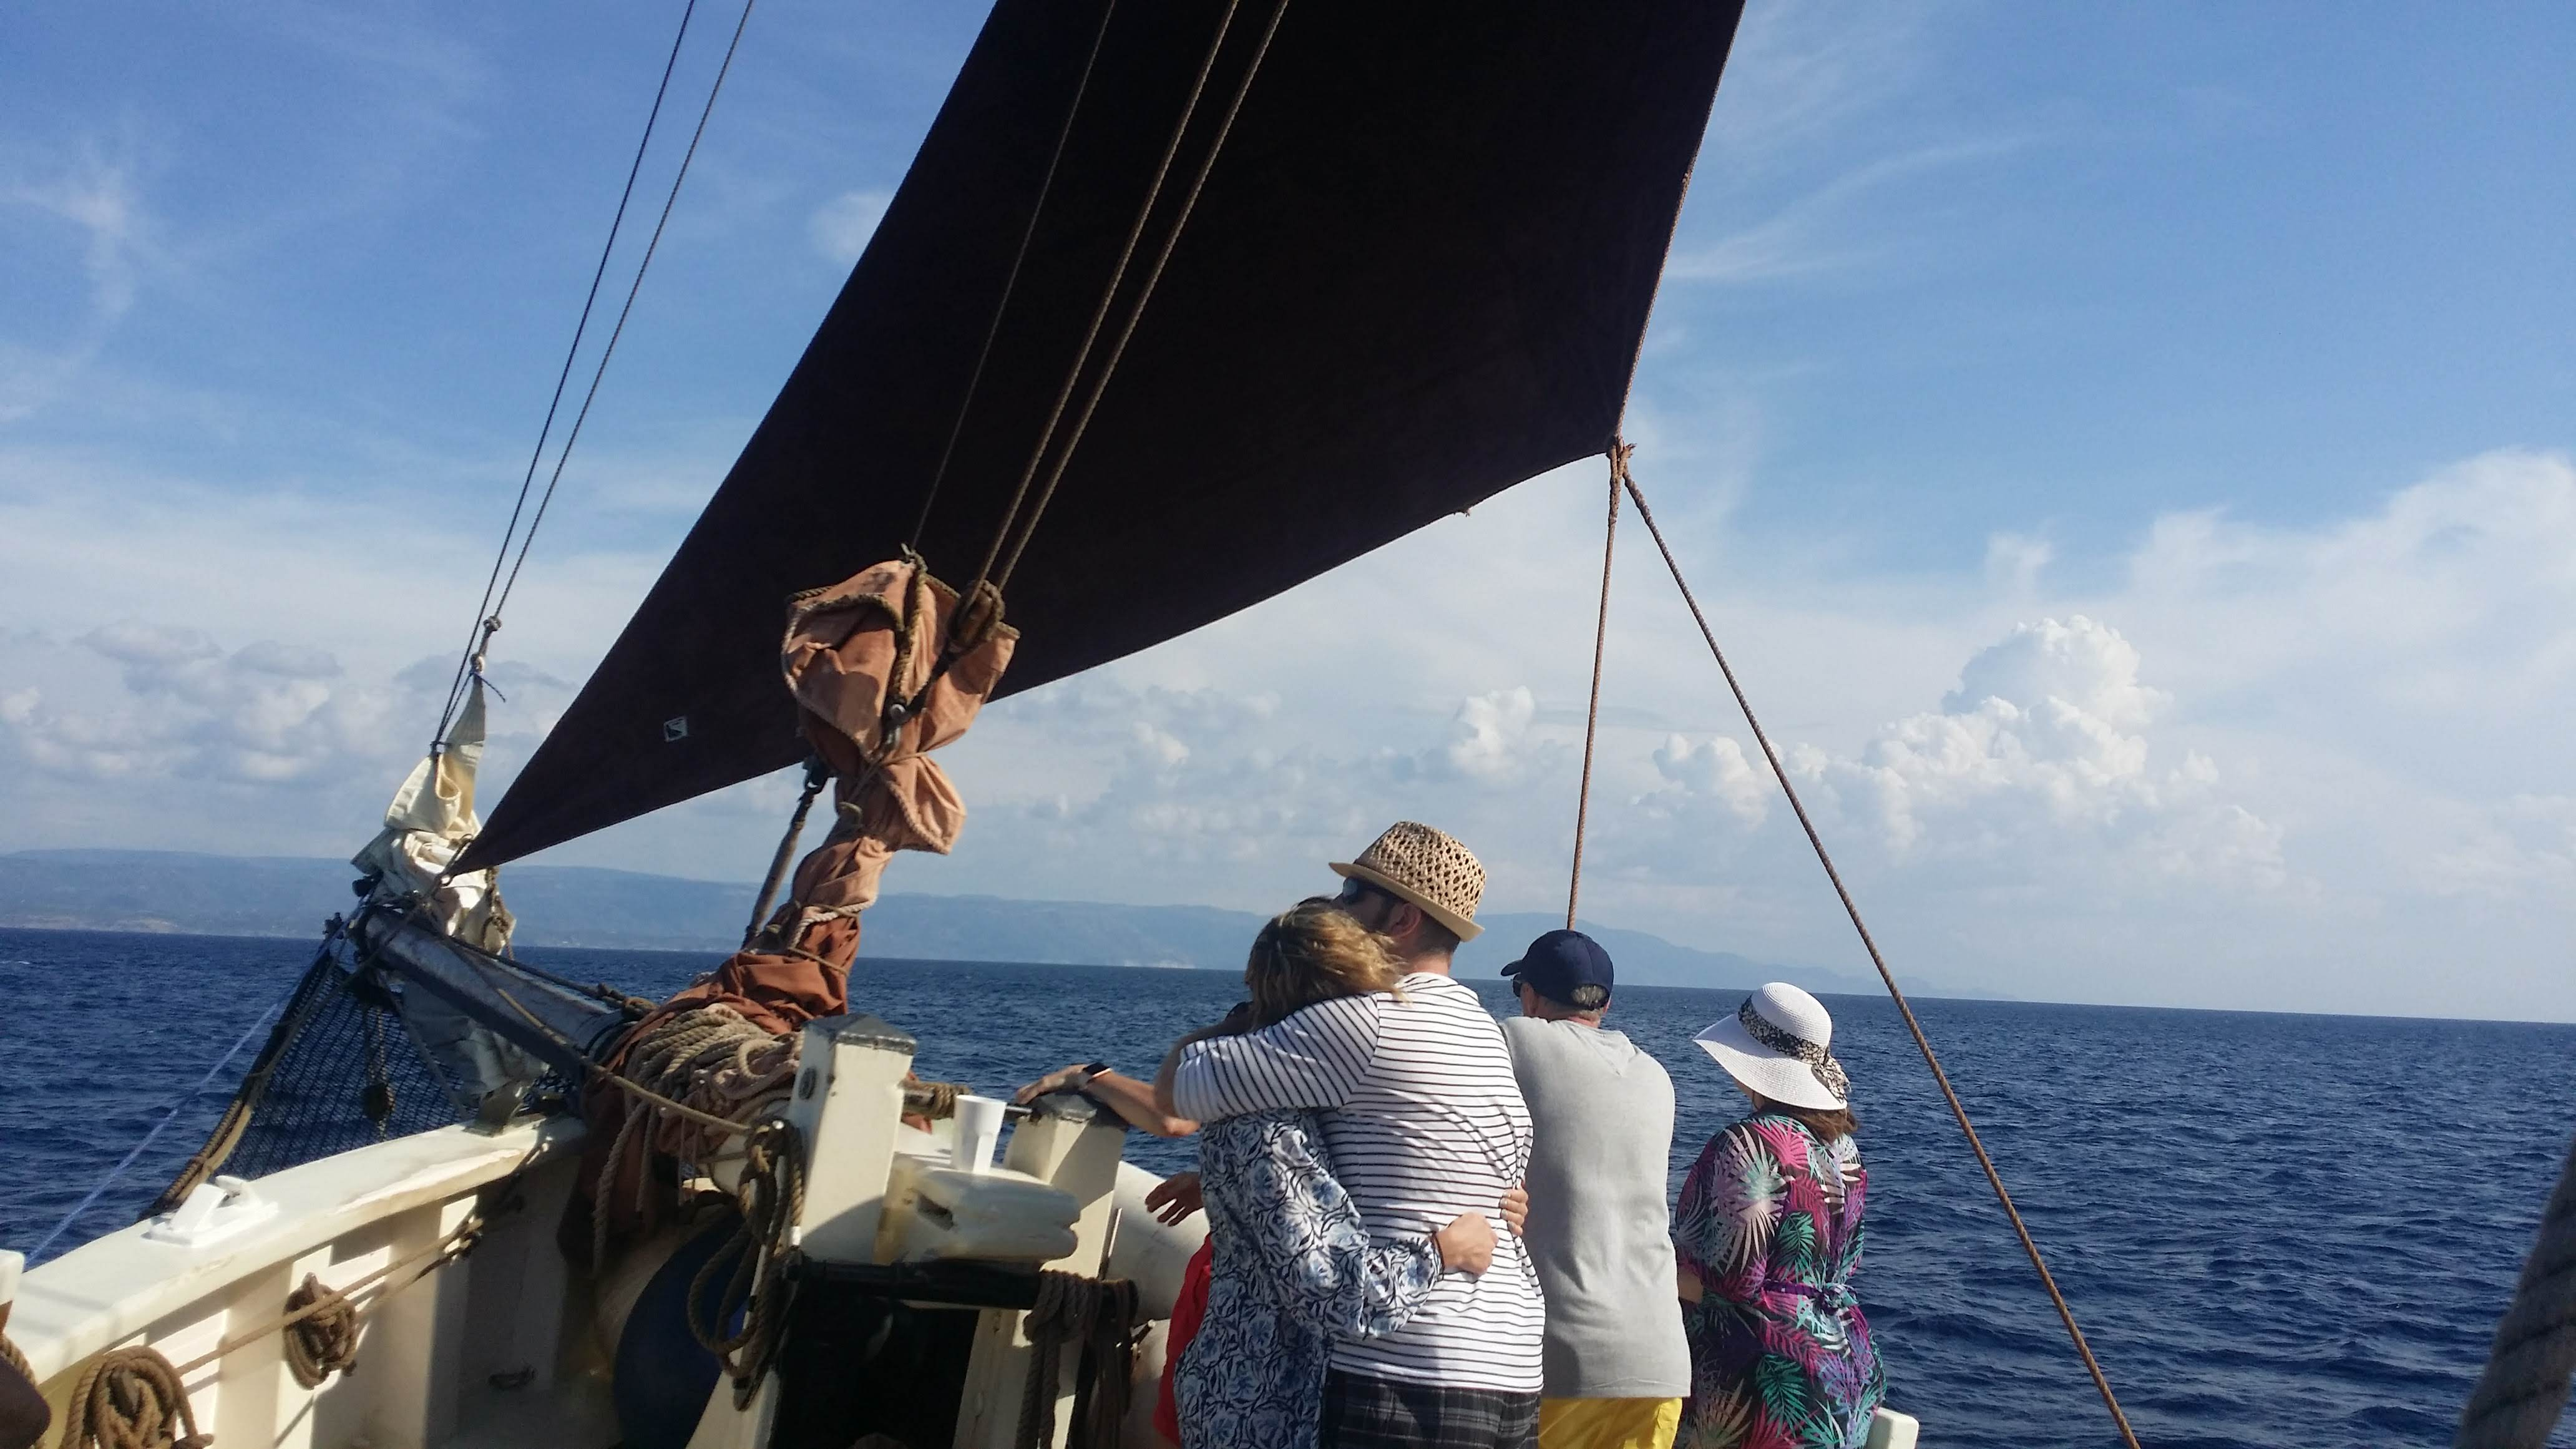 Traditional sailing is so romantic